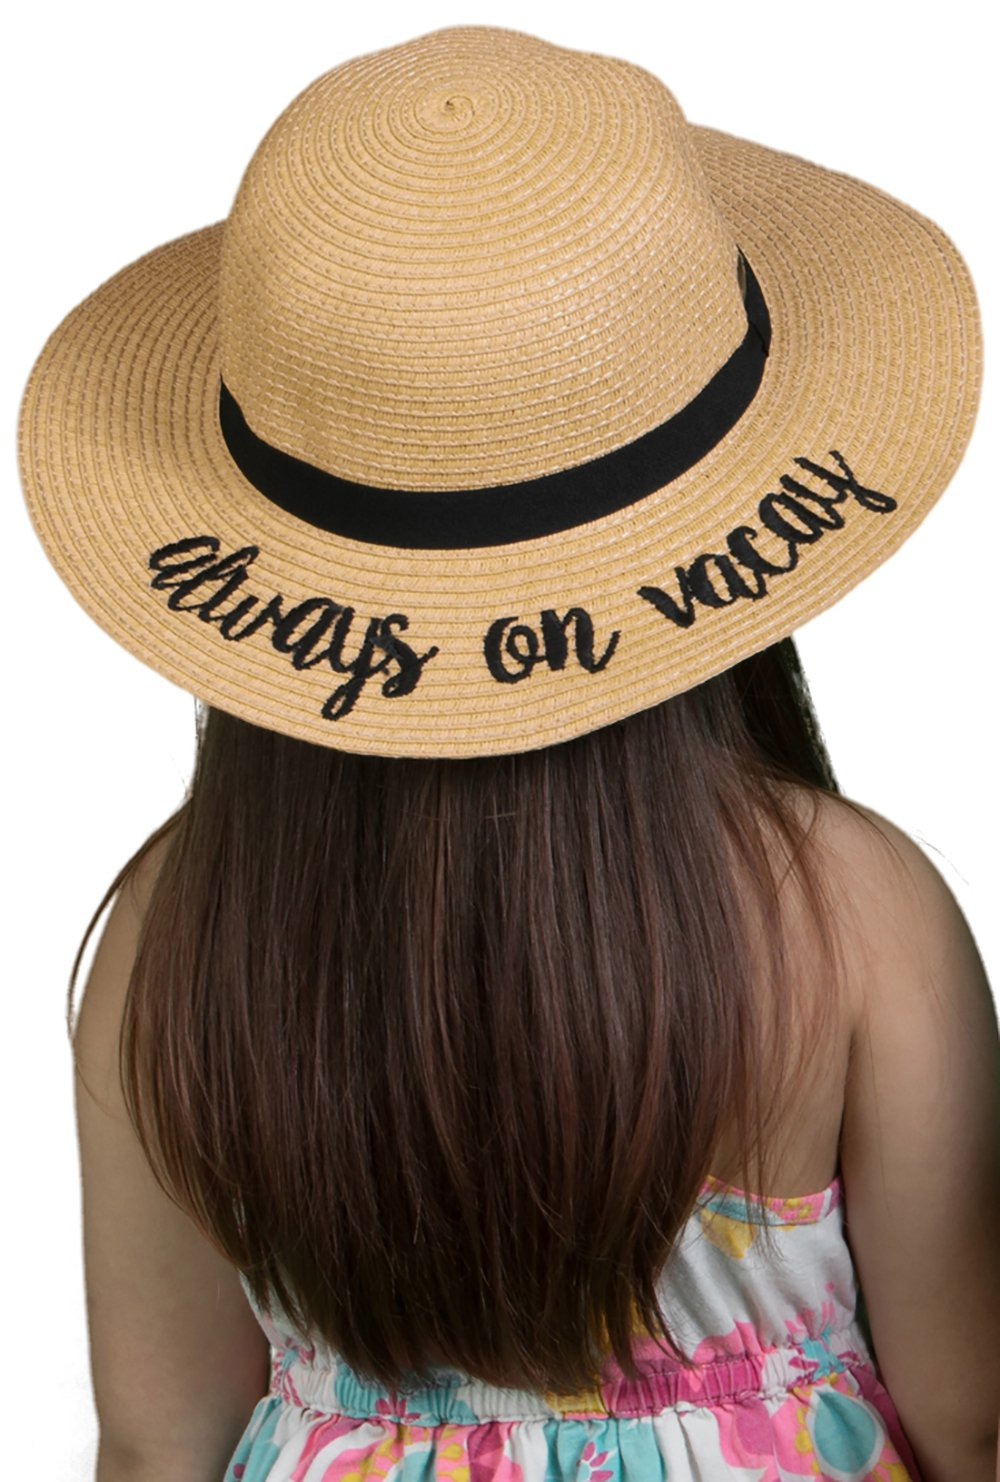 H-3017-AOV06 Girls Embroidered Sun Hat - Always on Vacay (Natural)